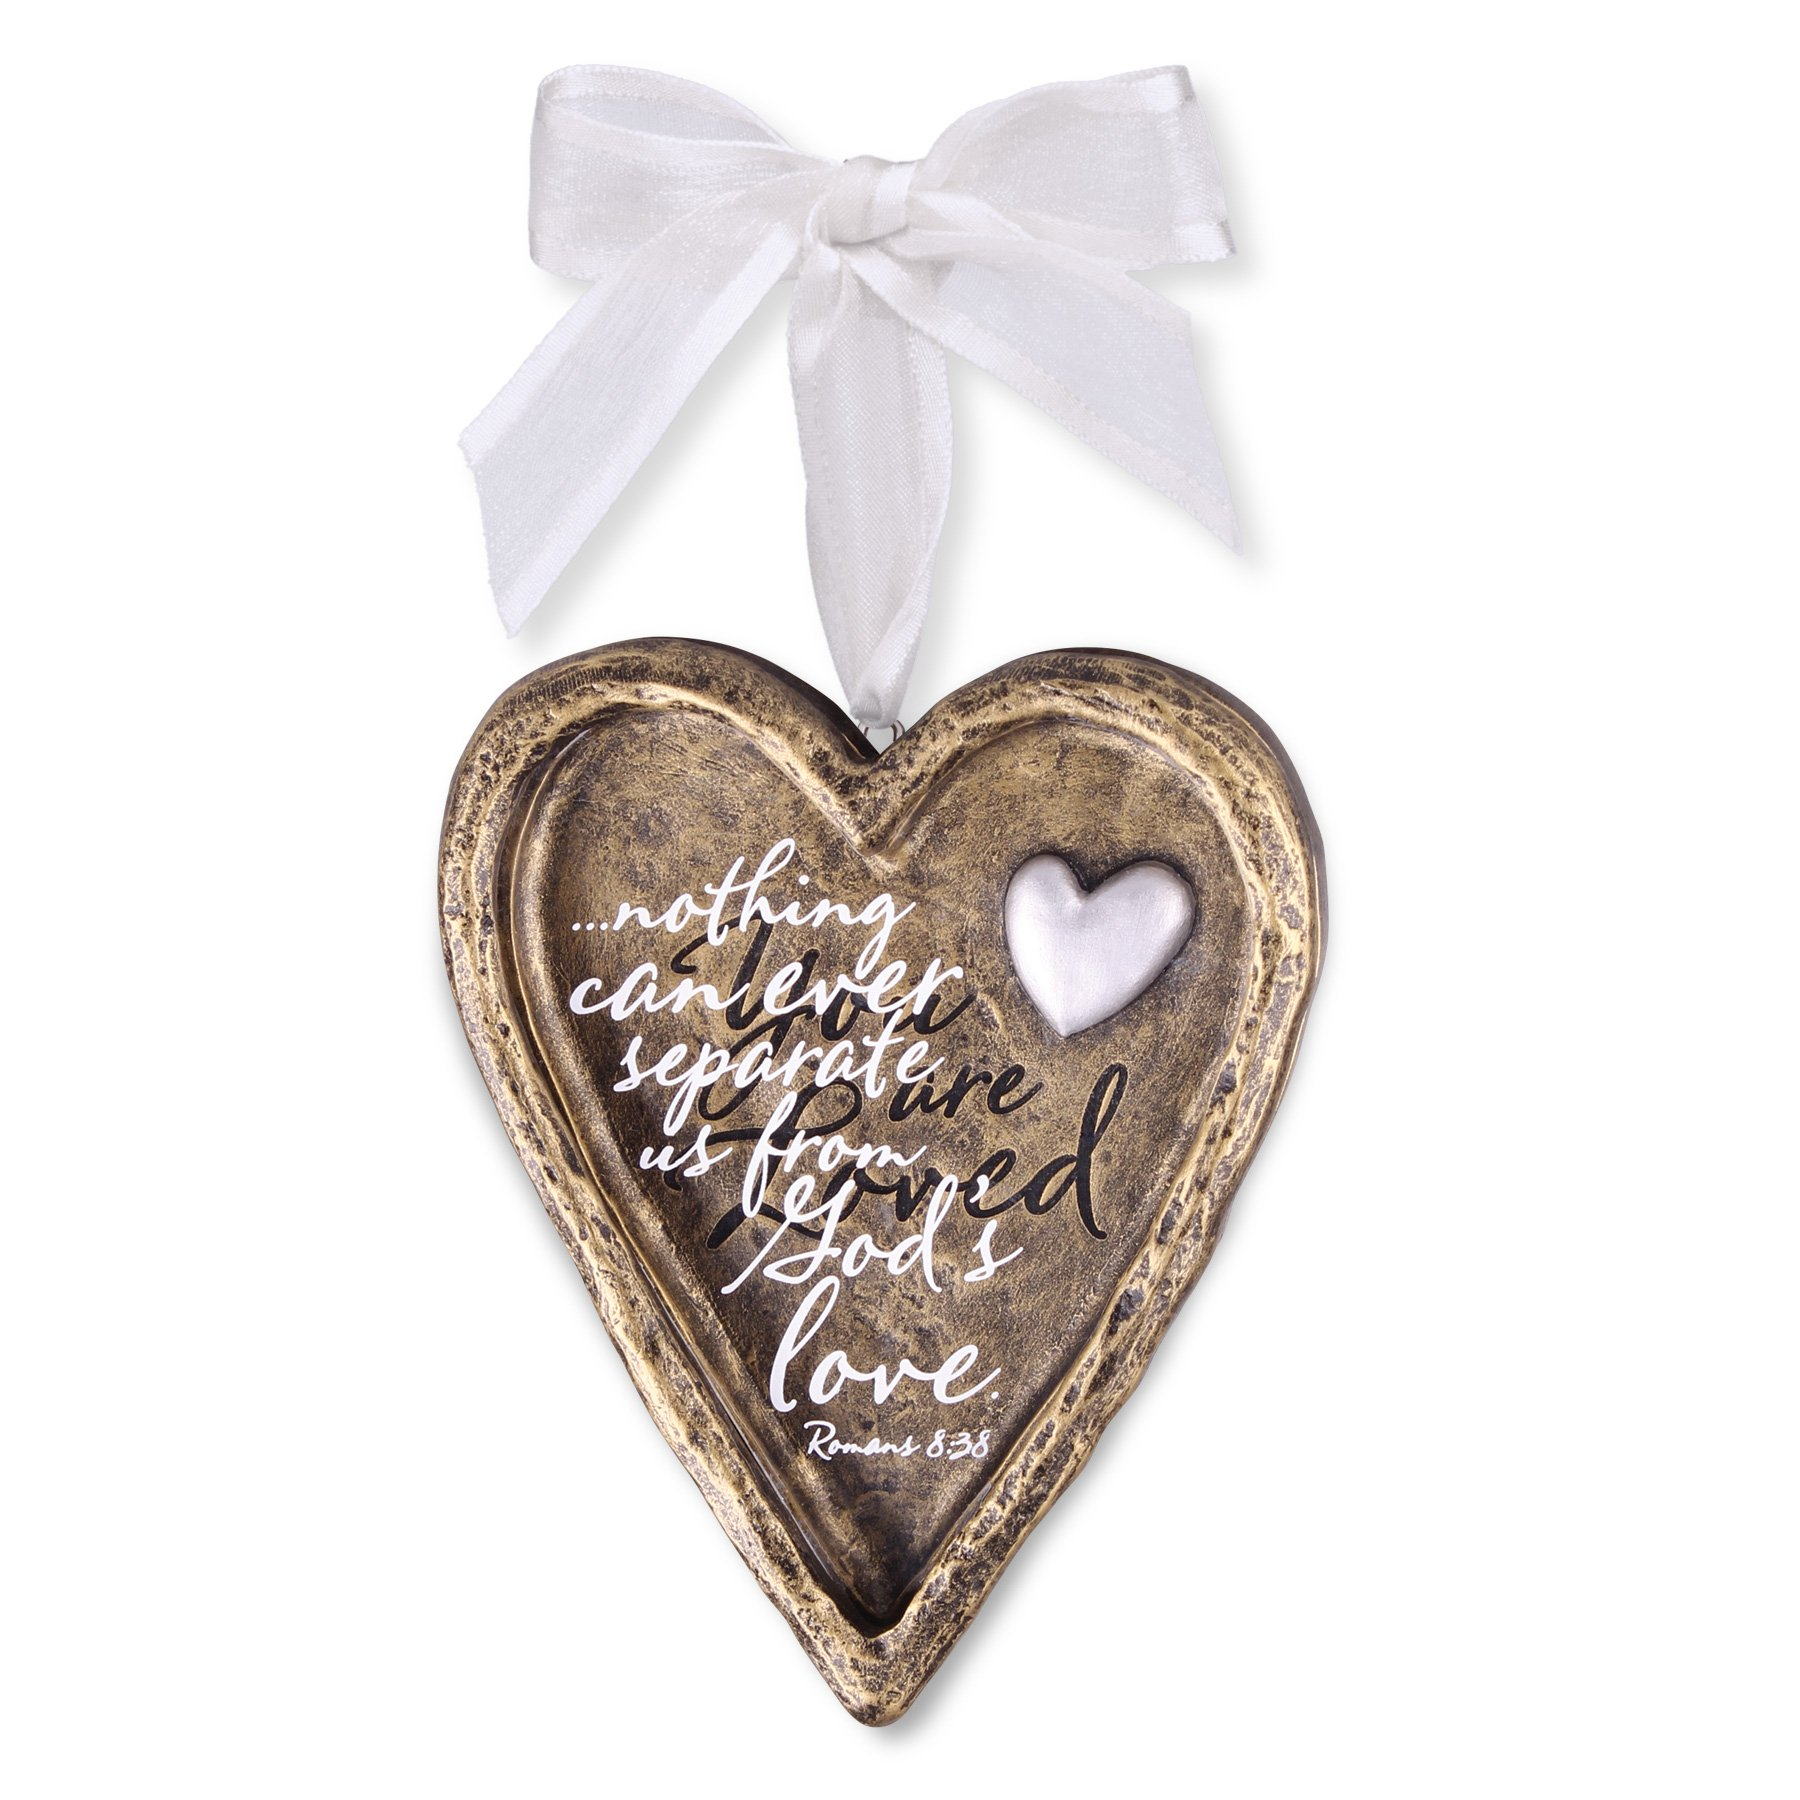 Lighthouse Christian Products You are Loved Resin Heart Christmas Ornament